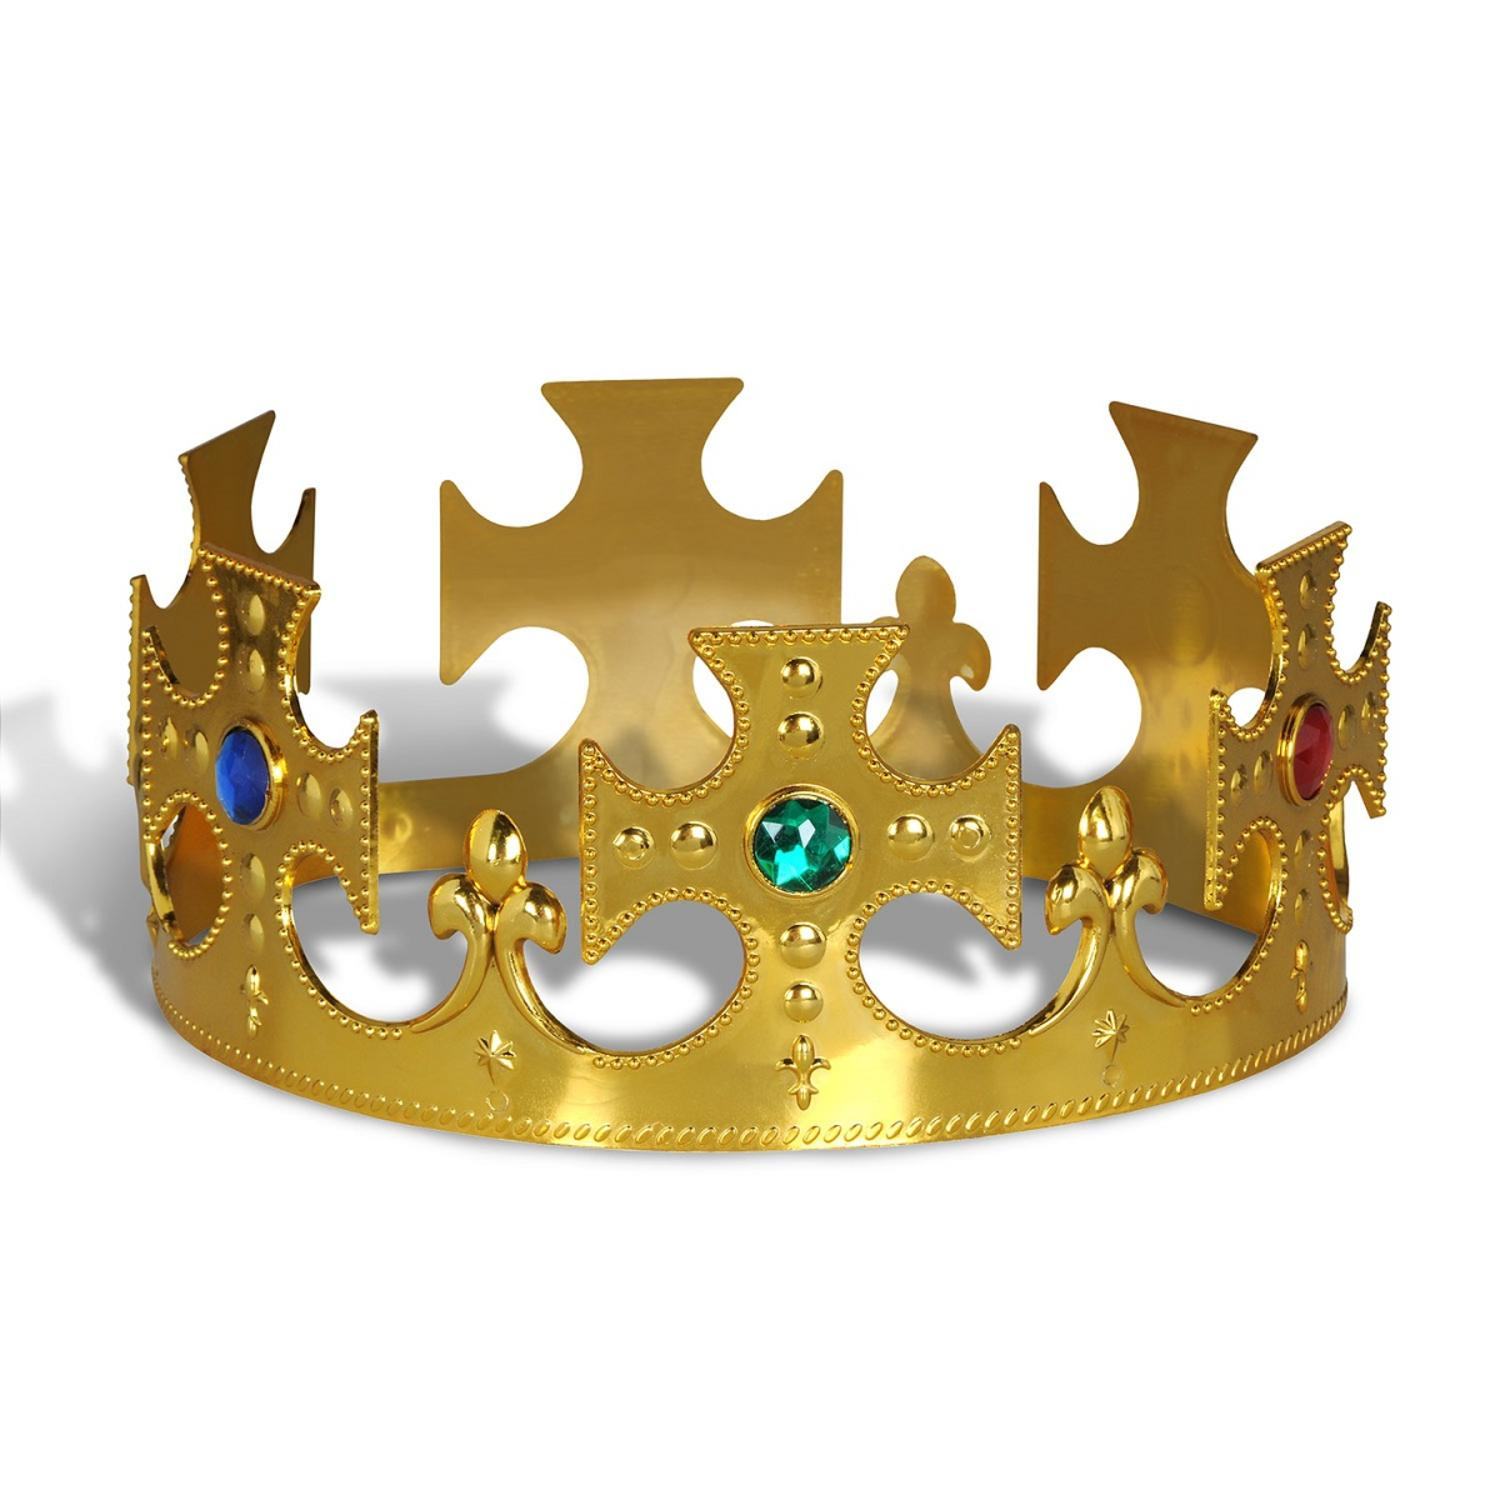 Club Pack of 12 Plastic Jeweled Gold King's Crown Adjustable Party Hat